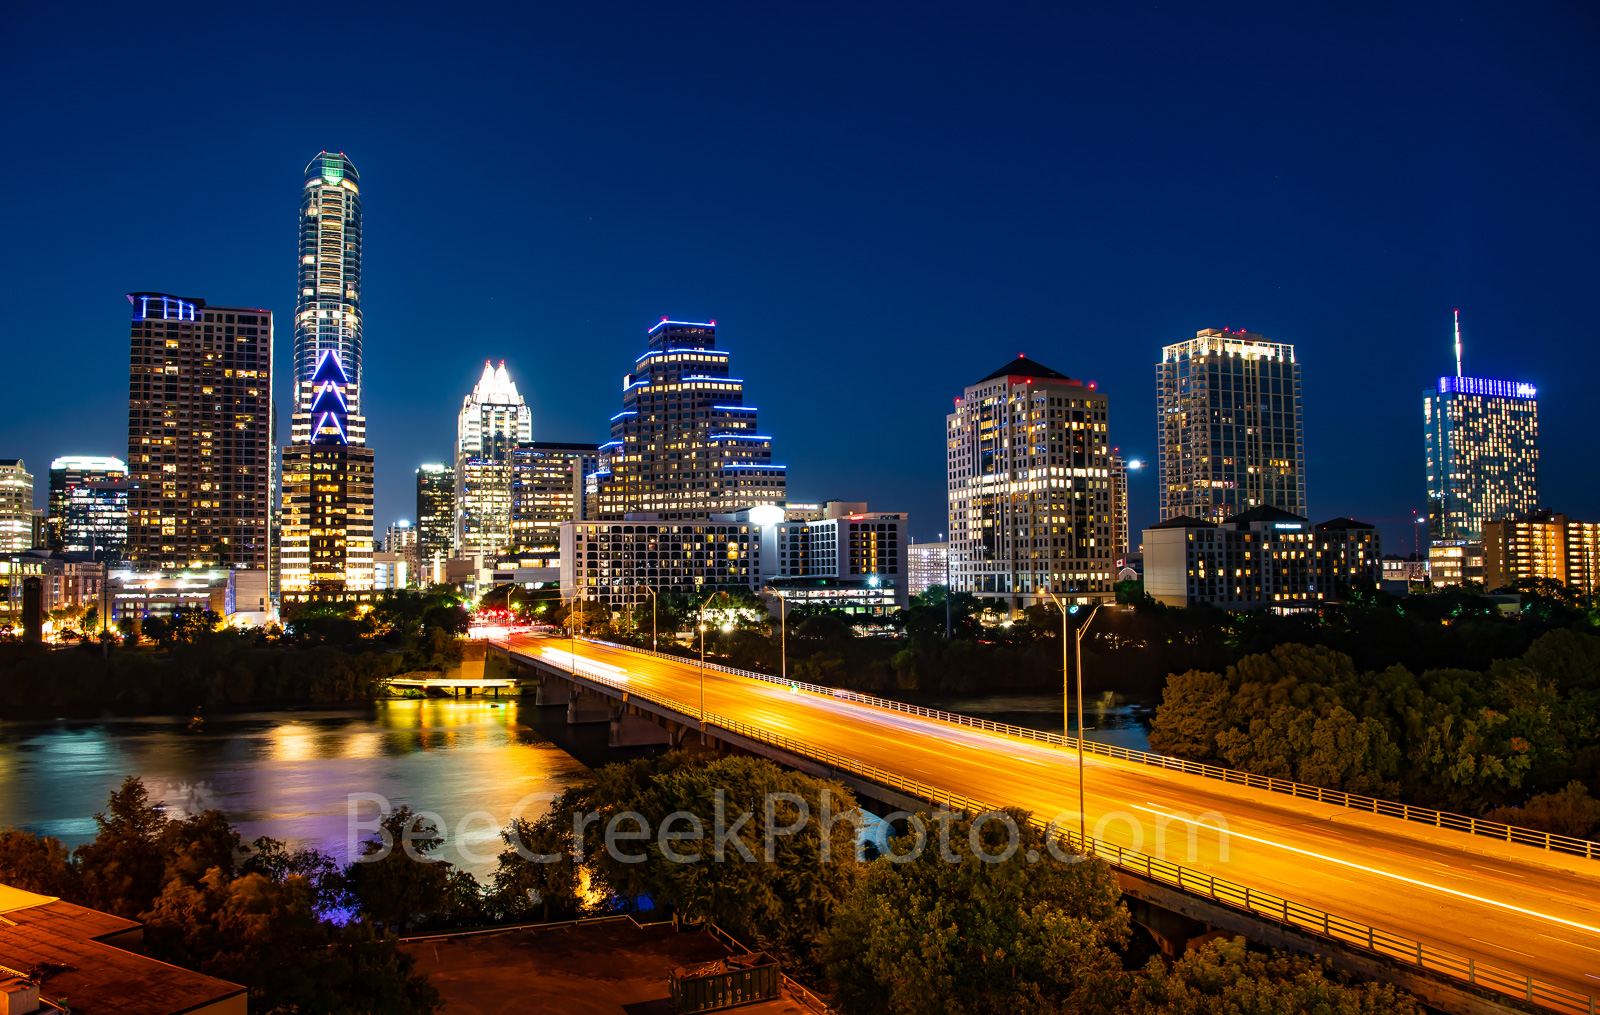 Austin, skyline, images of Austin, skylines,  Austin skyline images, street scene,  cityscape, city photos,  photography, city,  downtown, iconic, buildings, Congress Avenue, bridge, street scene, dar, photo